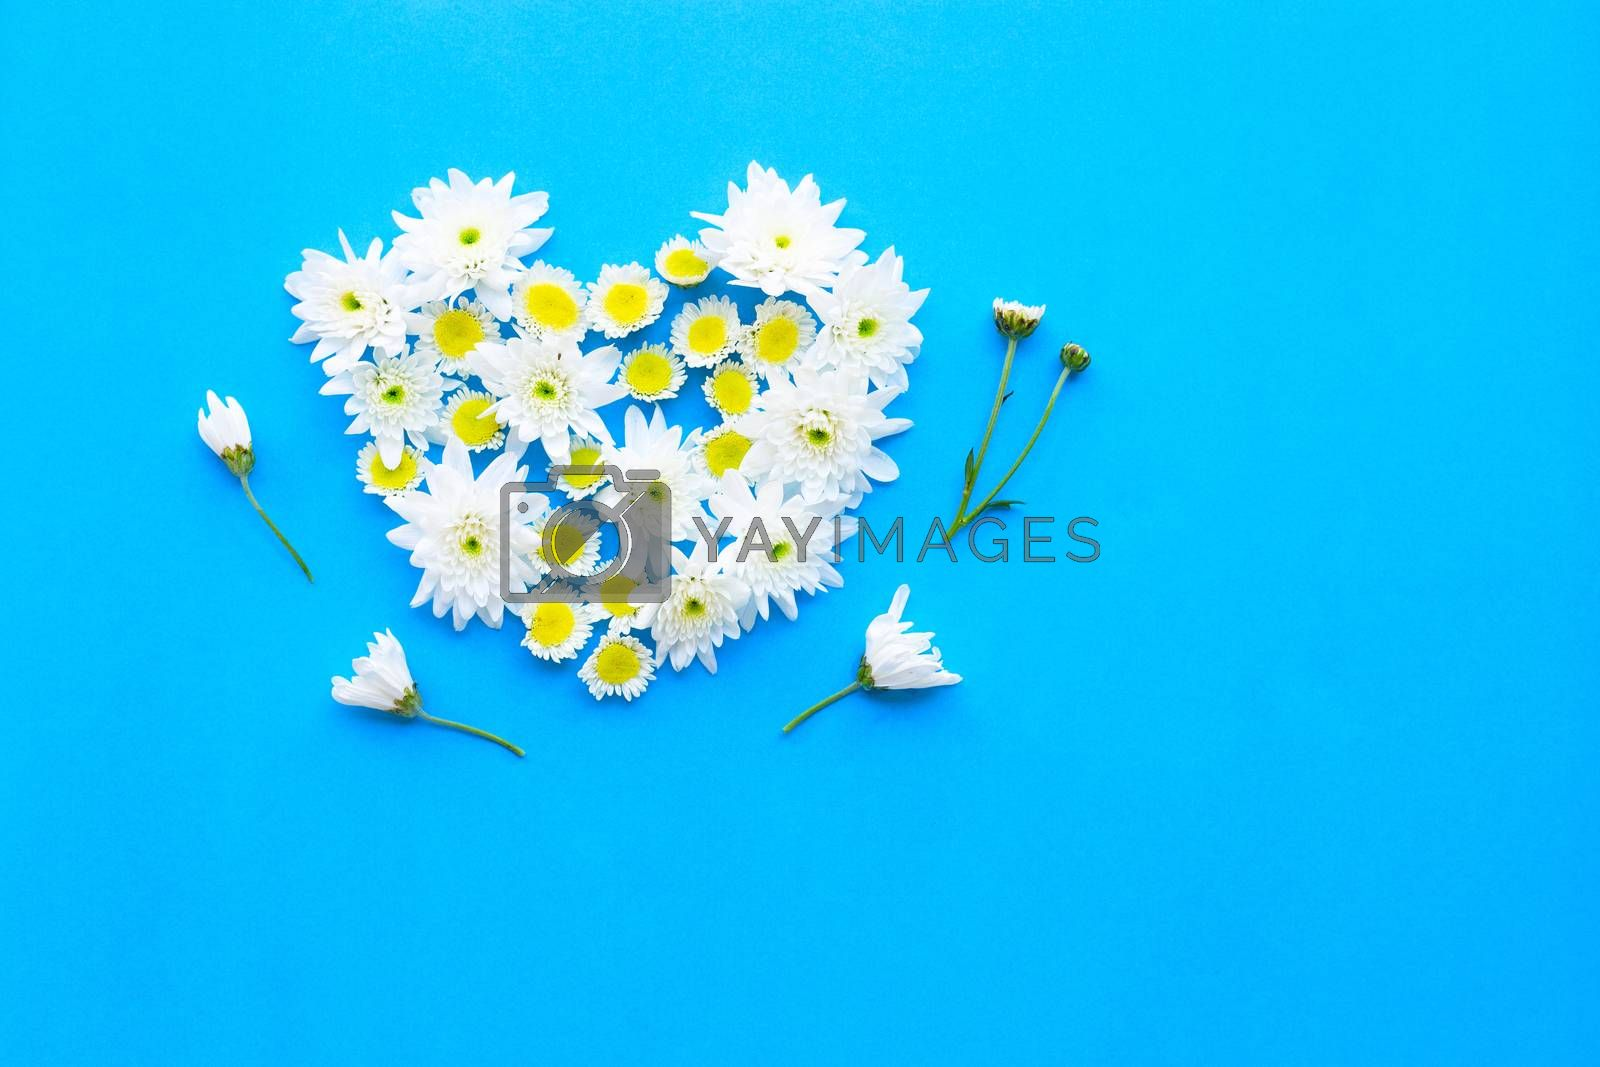 Composition of white yellow flowers on blue paper background.